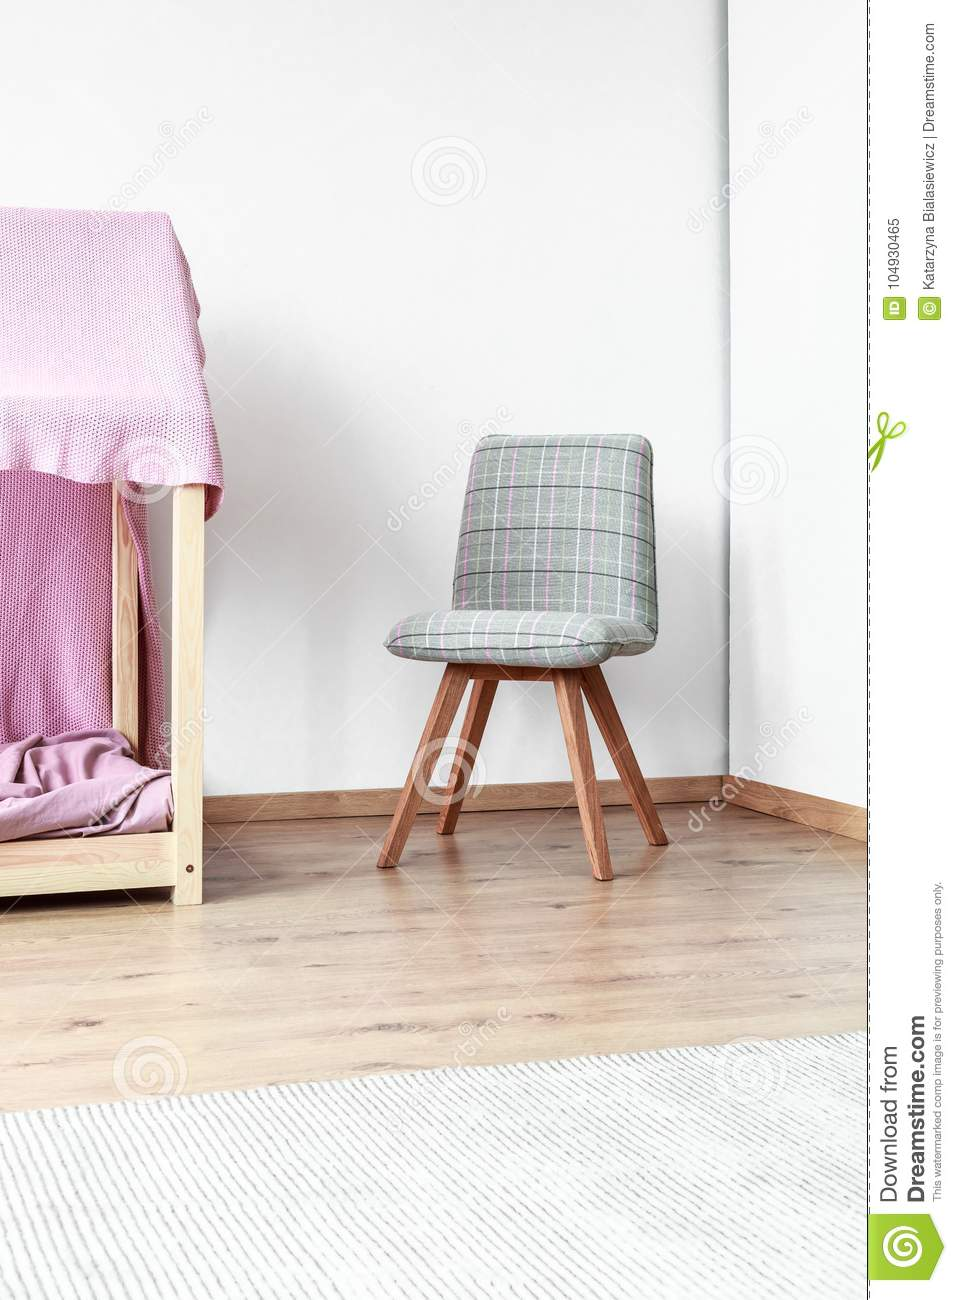 Tremendous Grey Classic Chair In Bedroom Stock Image Image Of Cozy Pabps2019 Chair Design Images Pabps2019Com